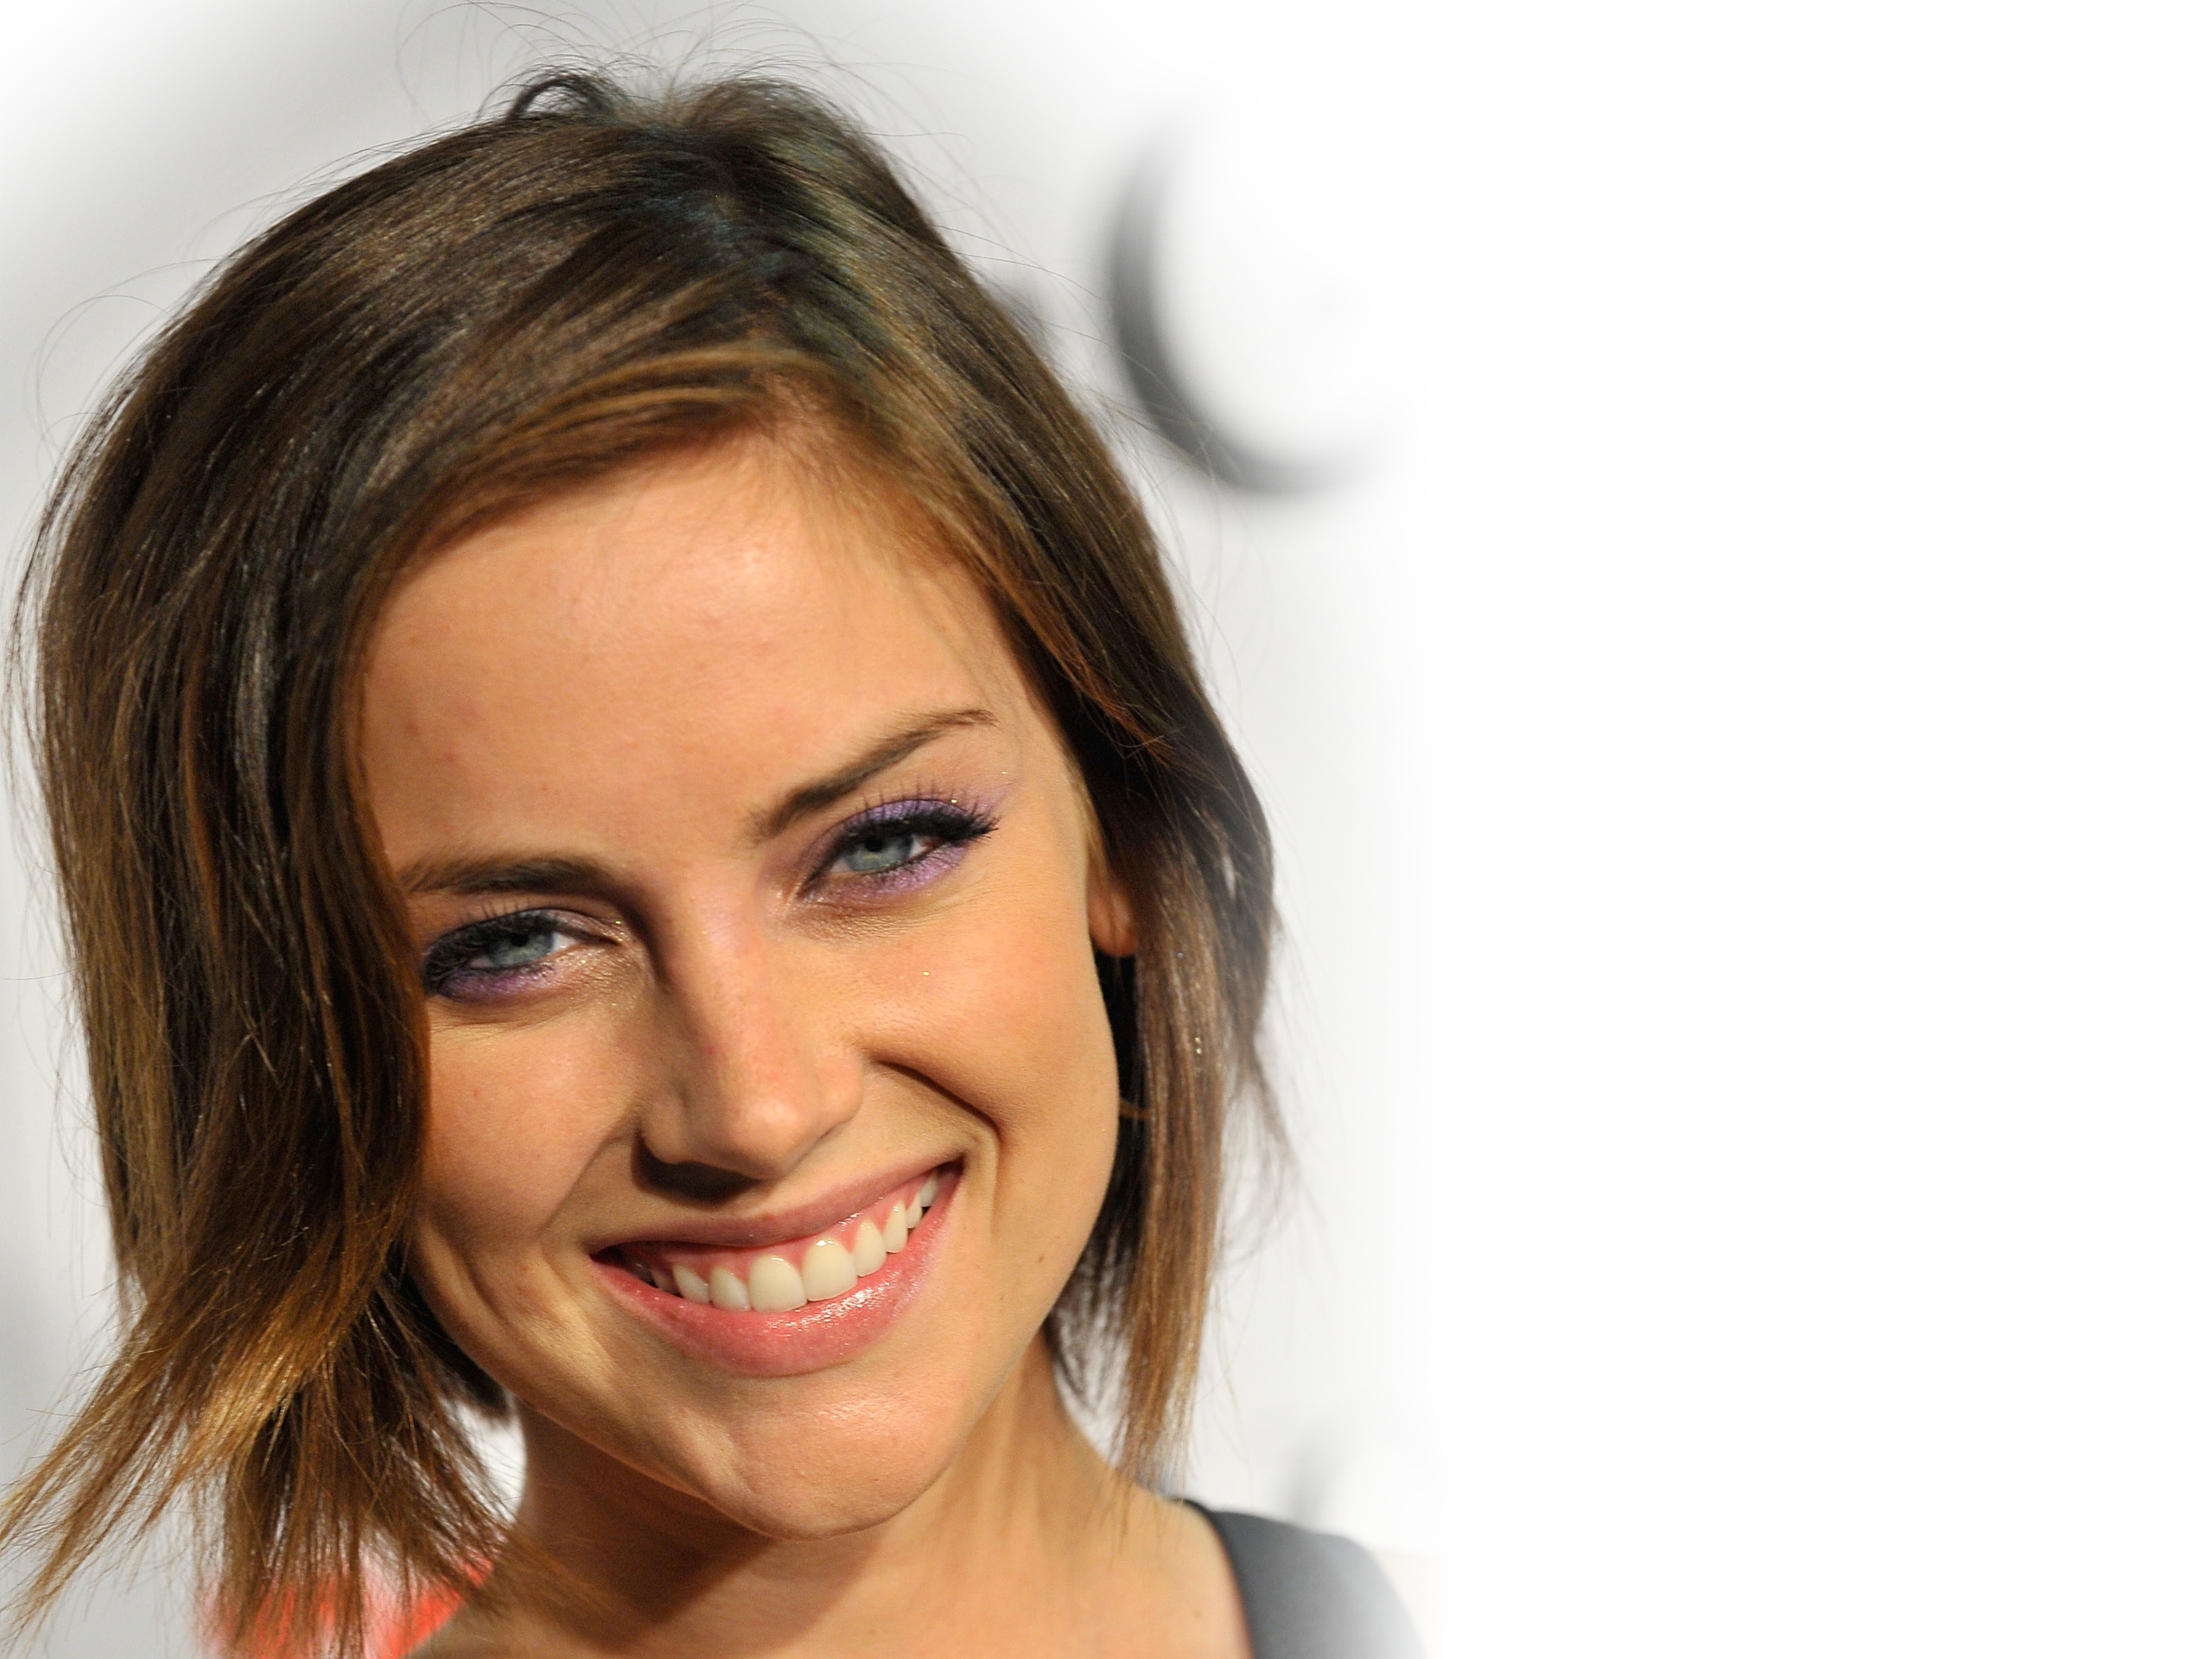 2560x1920 - Jessica Stroup Wallpapers 3